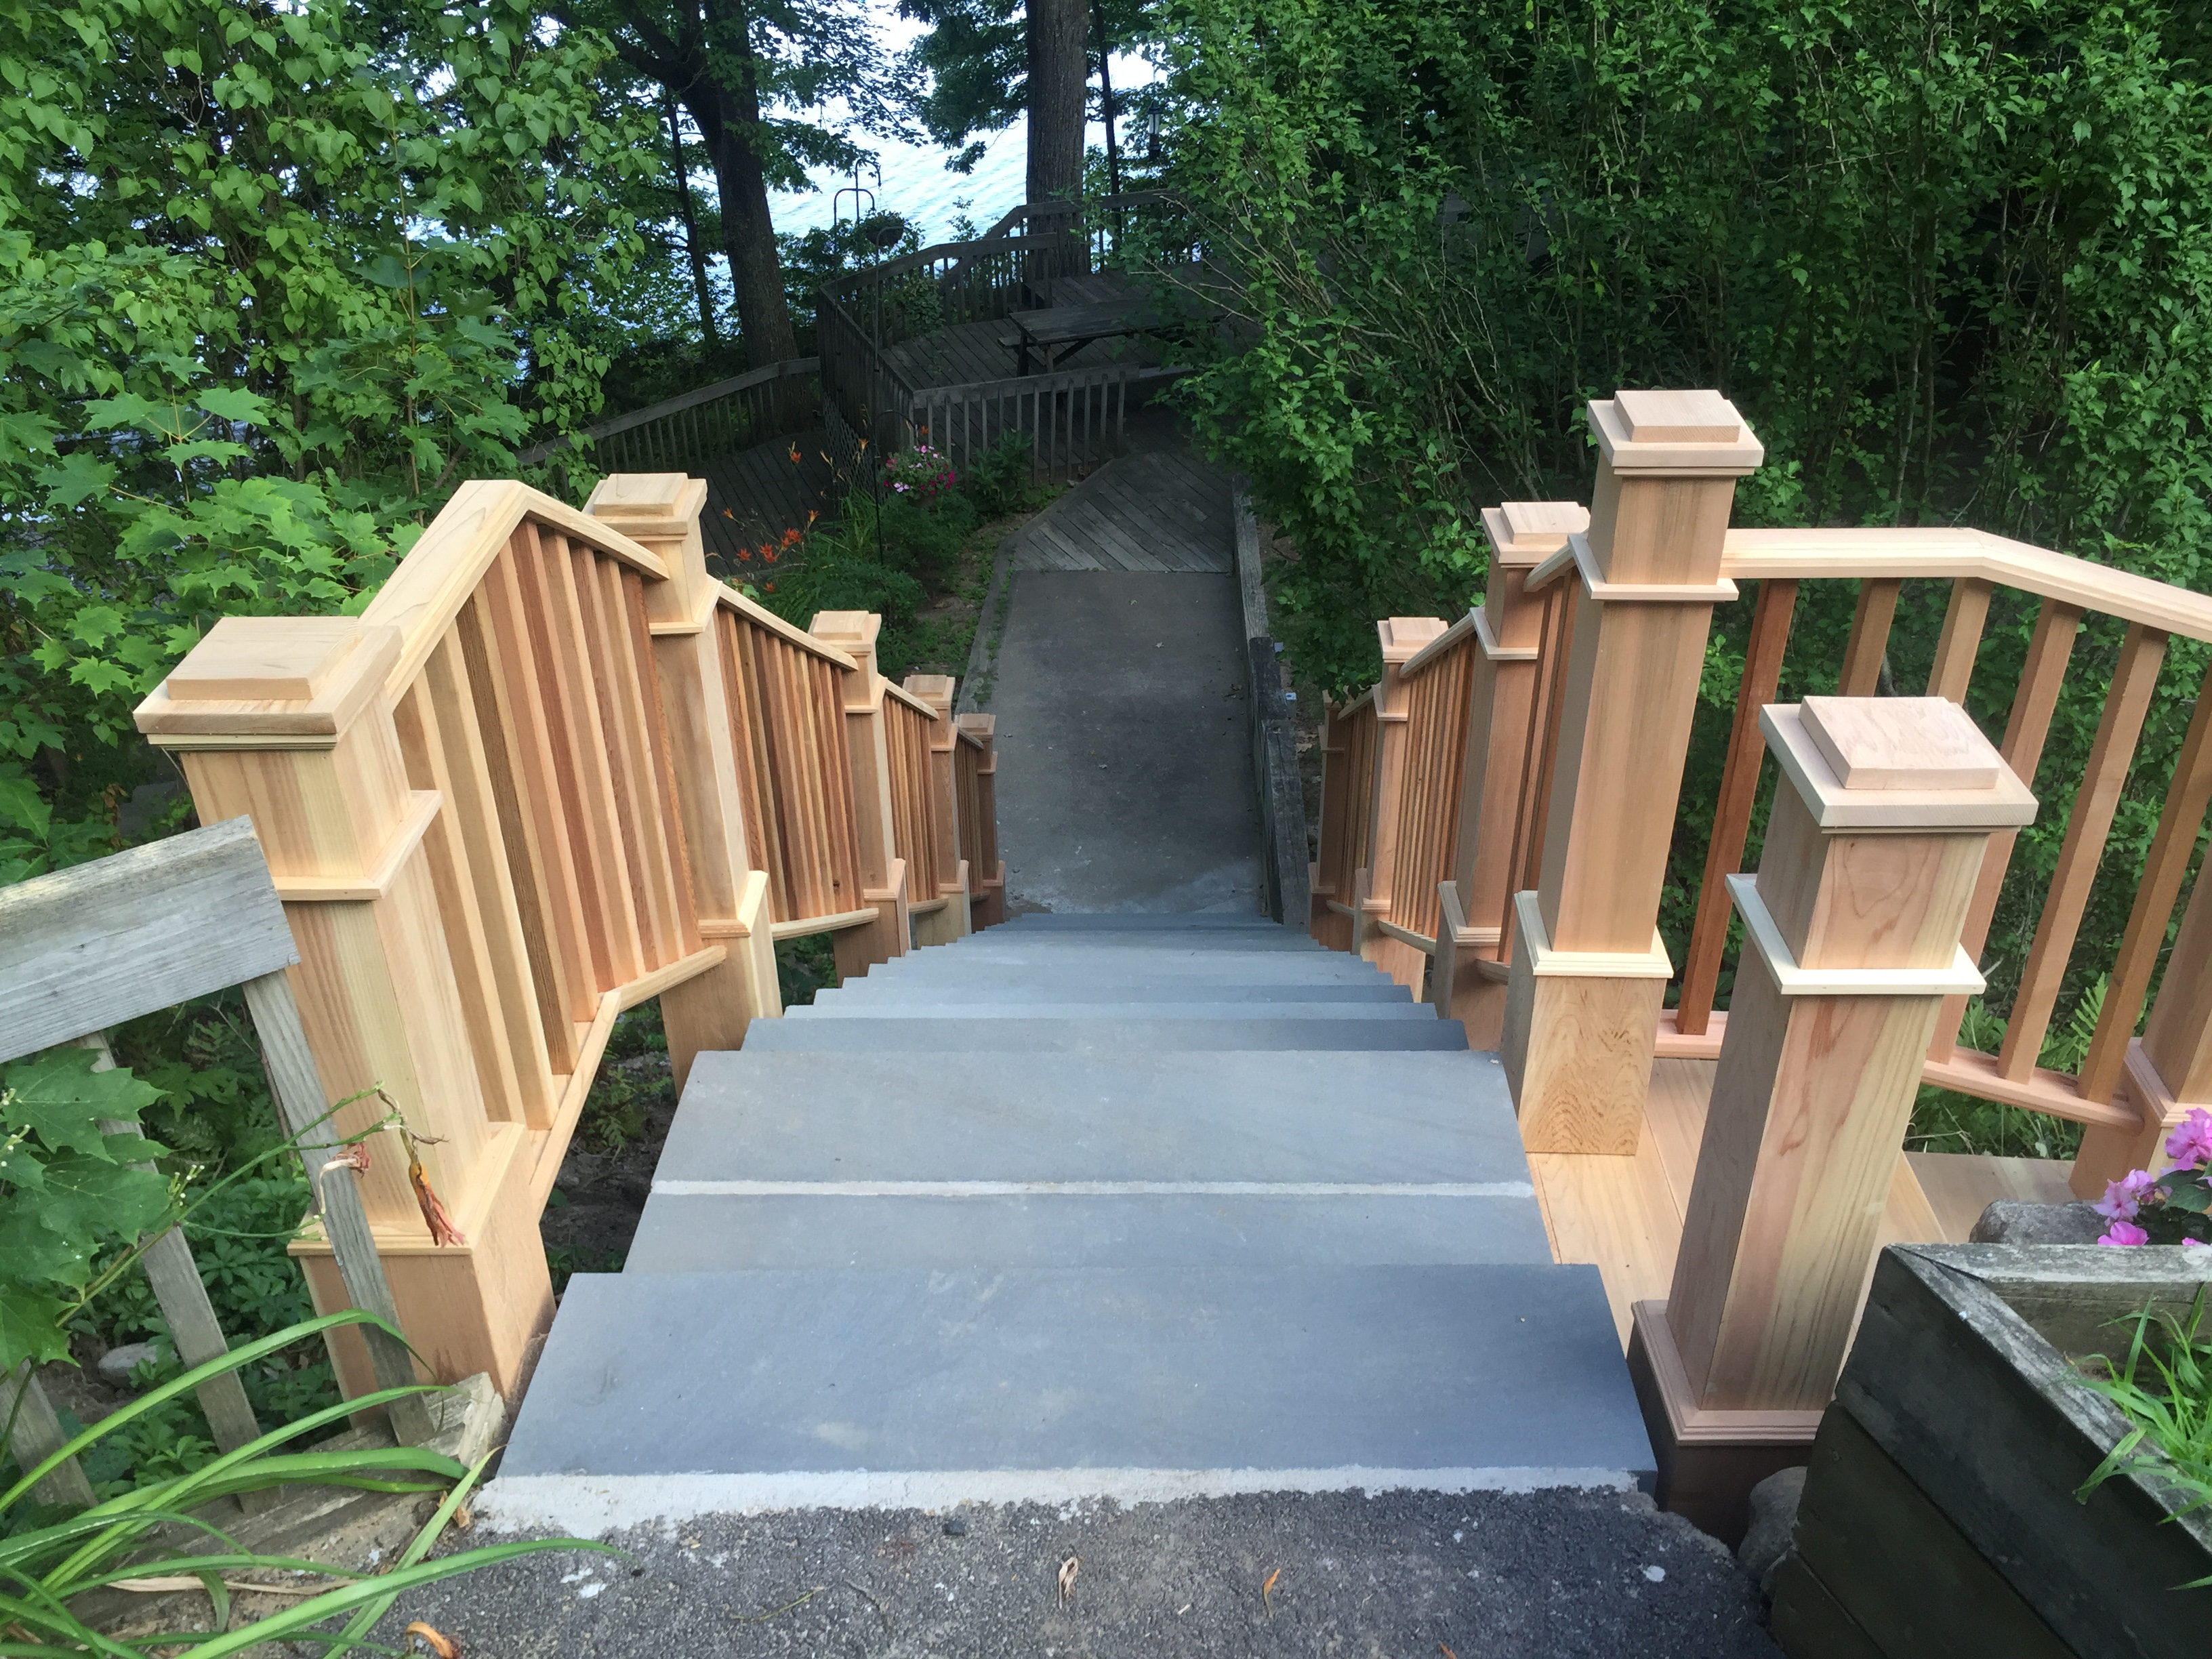 Outdoor Living | Patriot Construction of Upstate New York ... on Patriot Outdoor Living id=53999